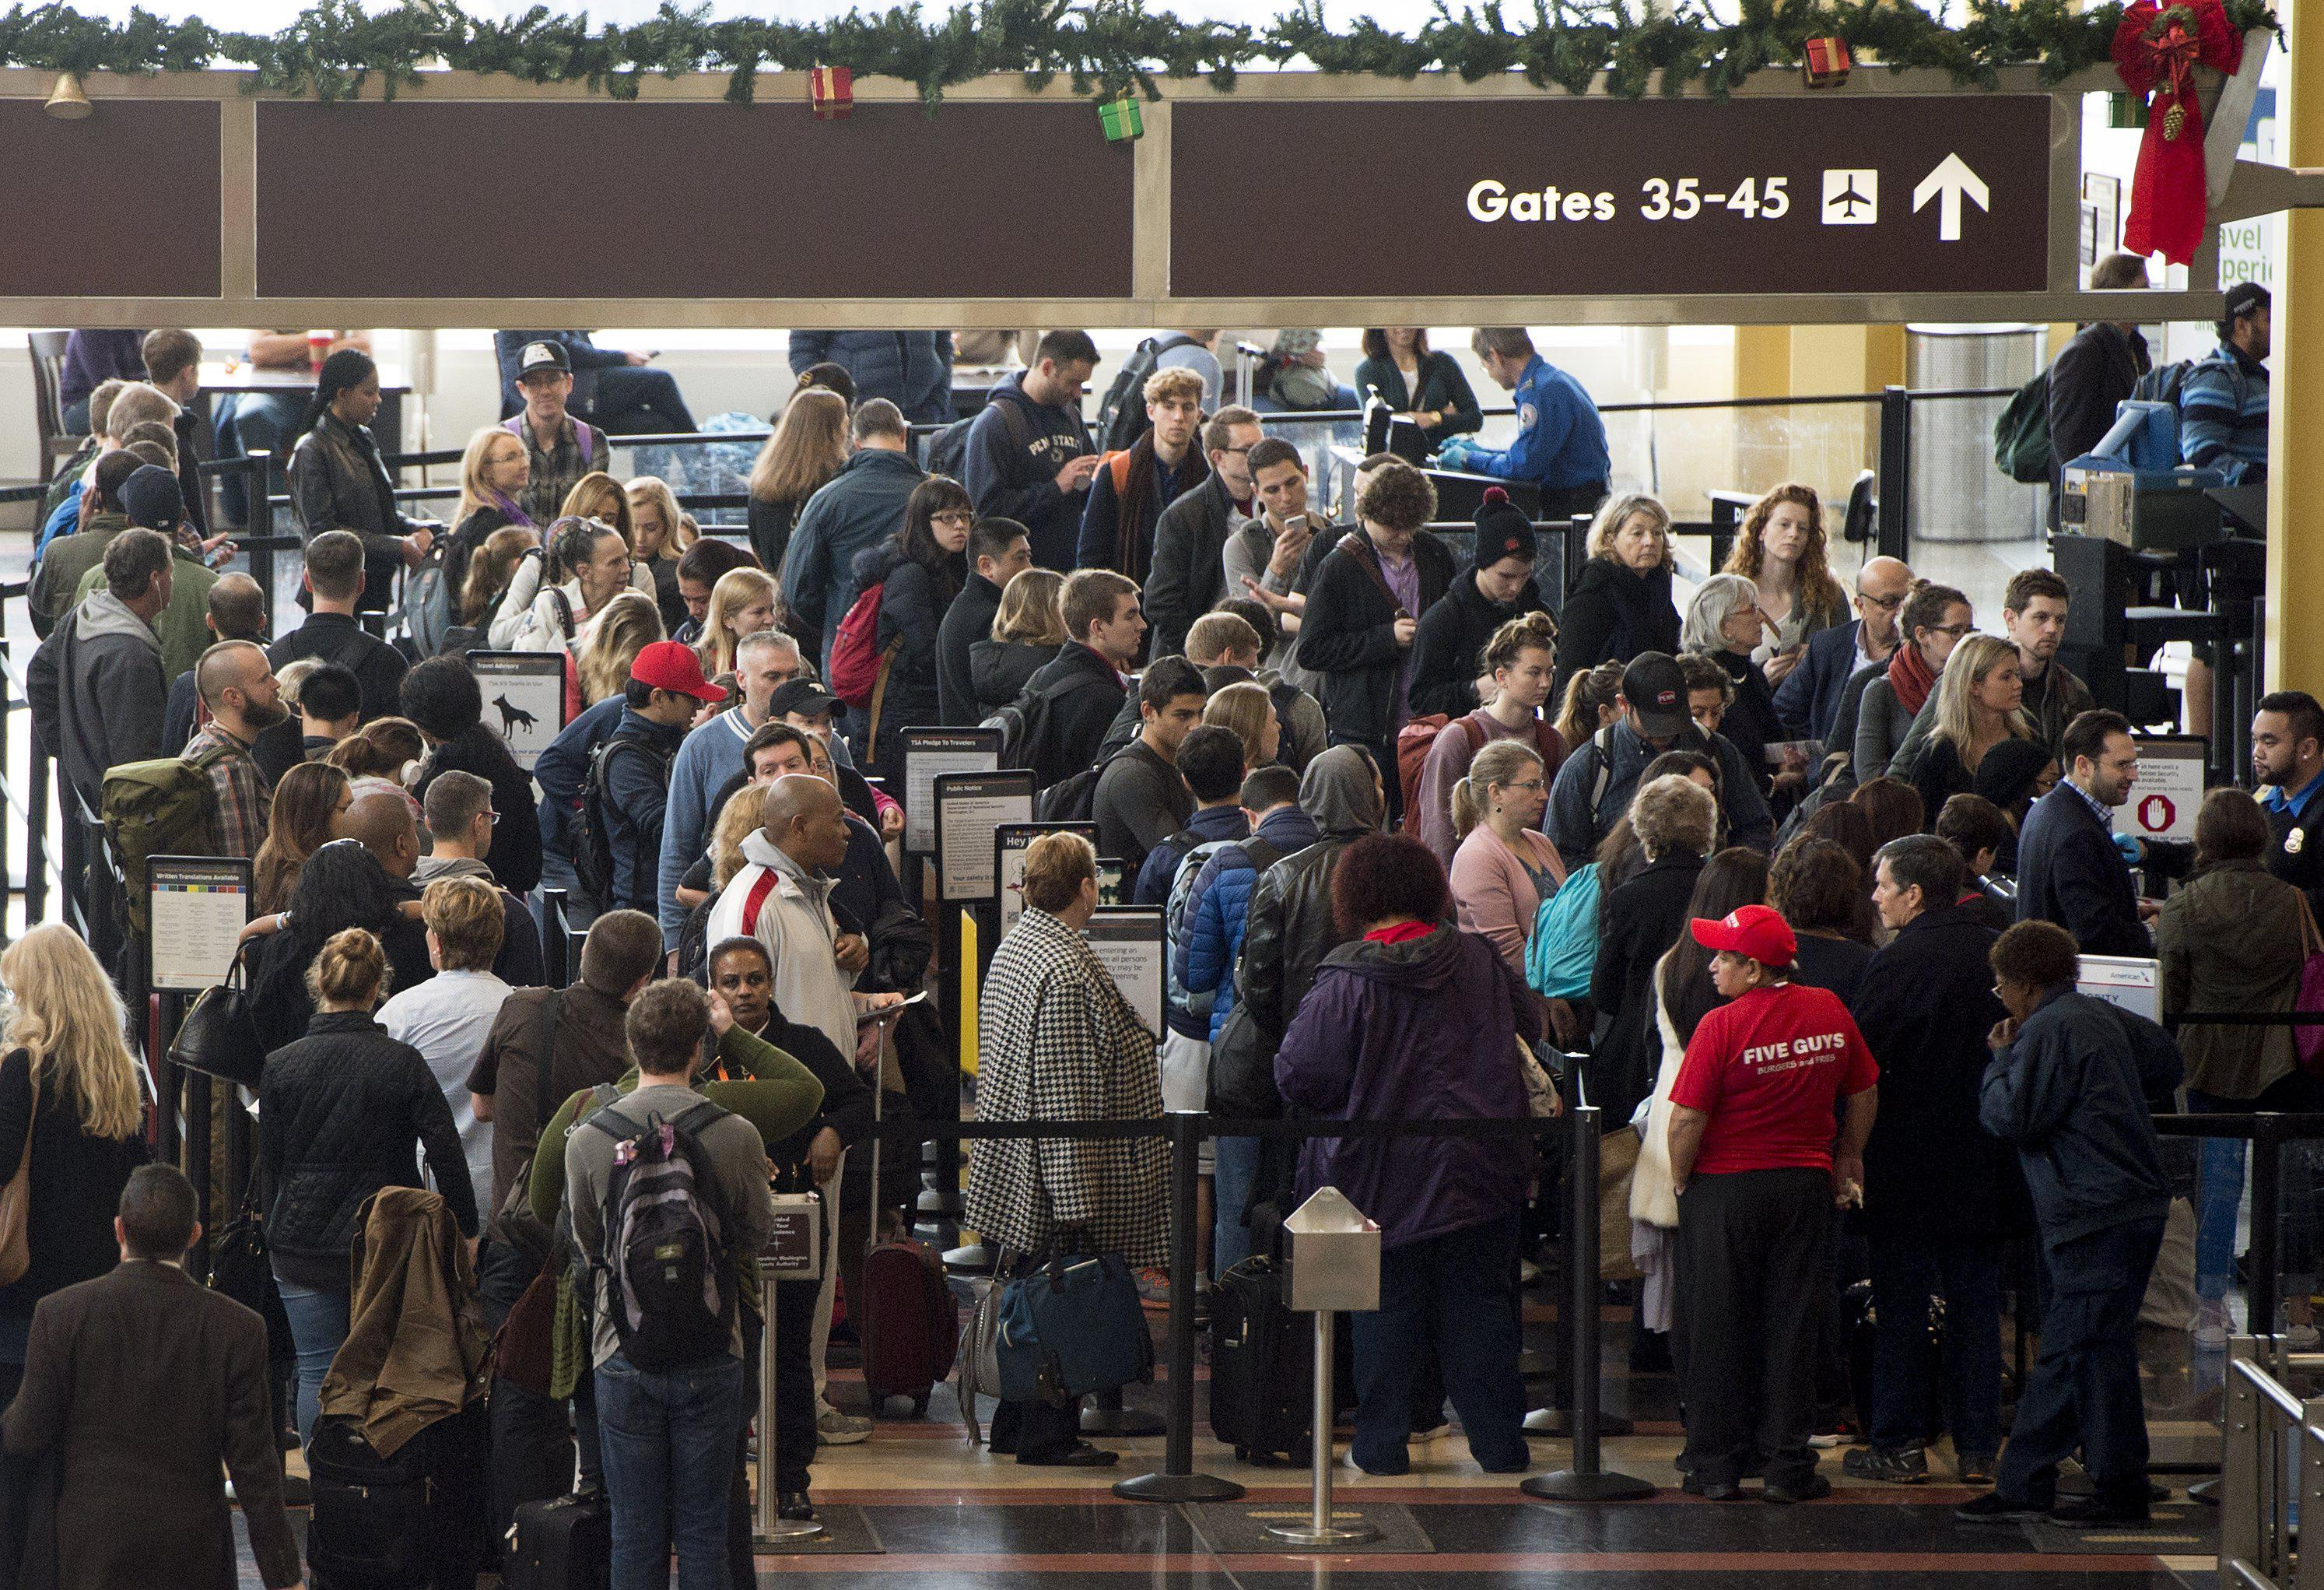 How the 1% Pays to Skip TSA Security Lines